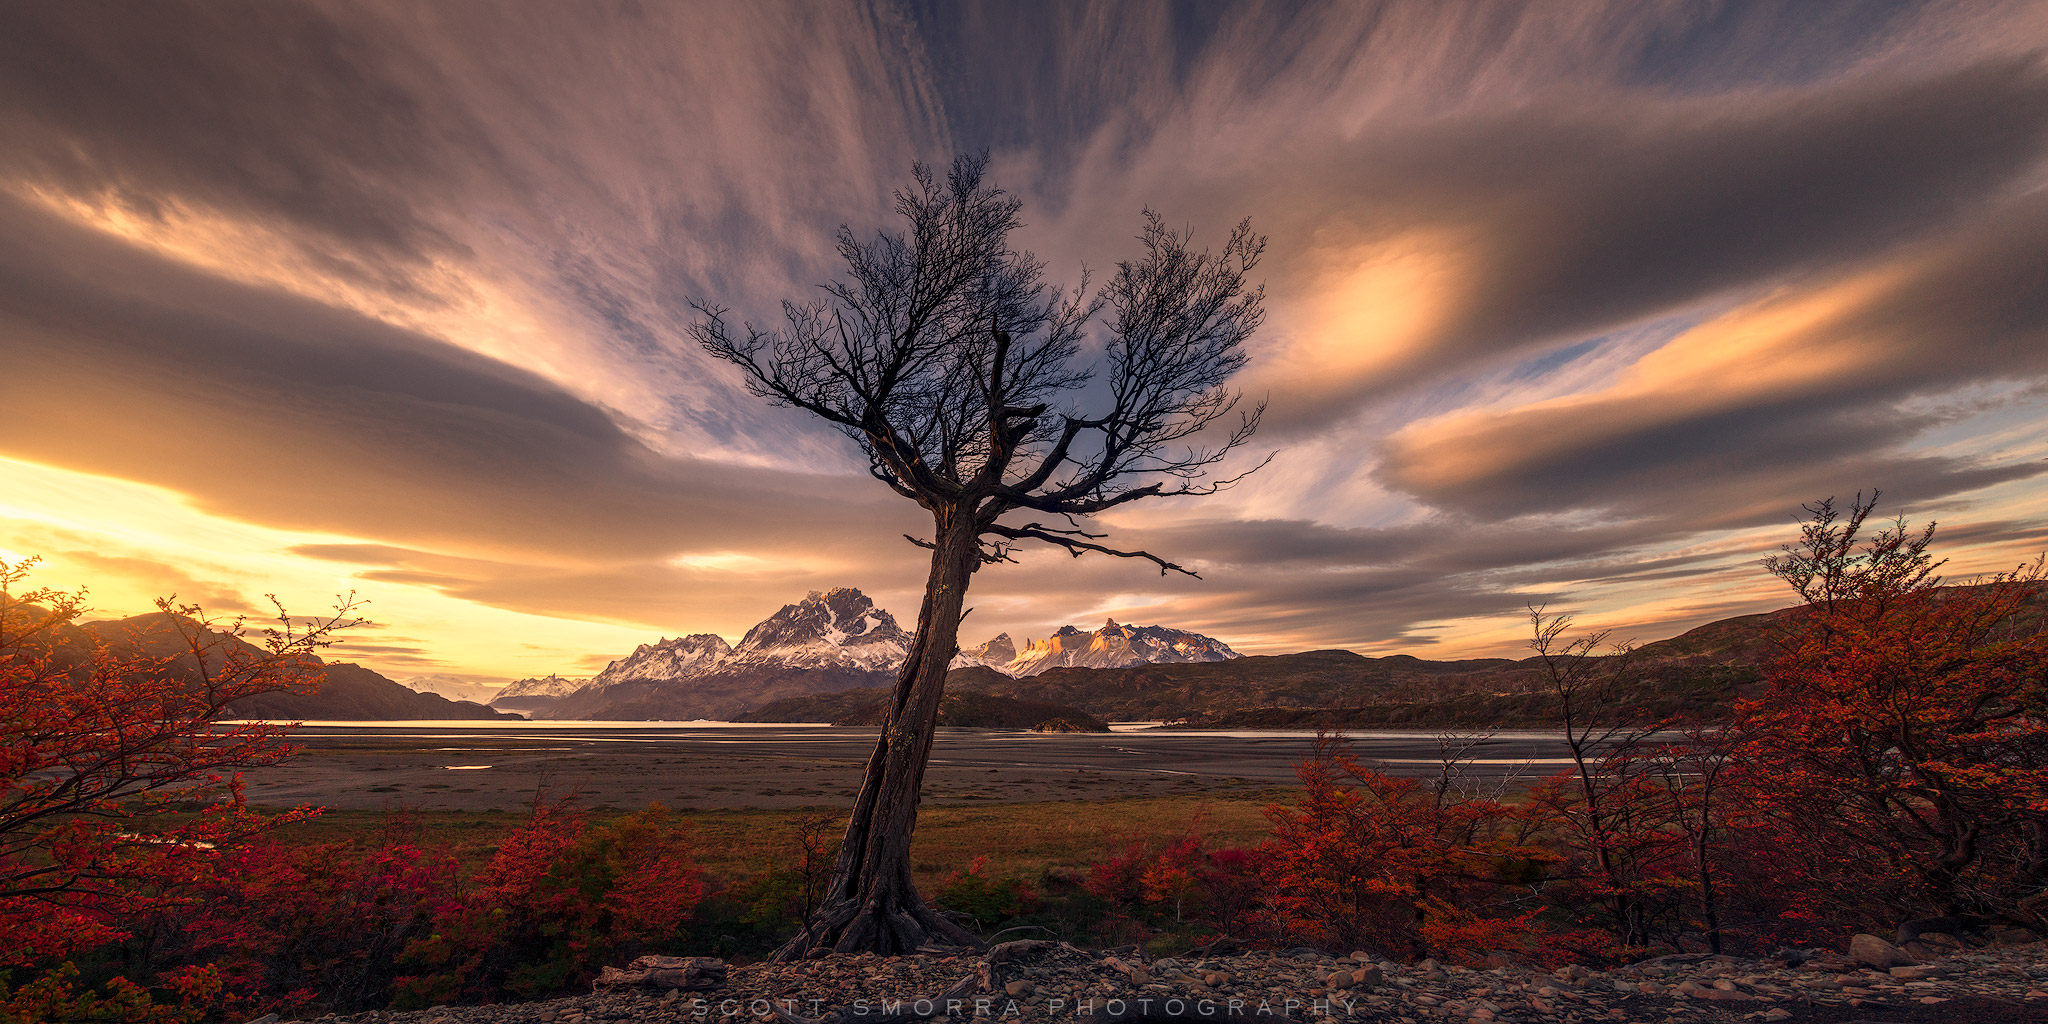 Fine Art Limited Edition of 100 - A leafless and solitary Lenga tree reaches towards a sunset sky filled with lenticular clouds...